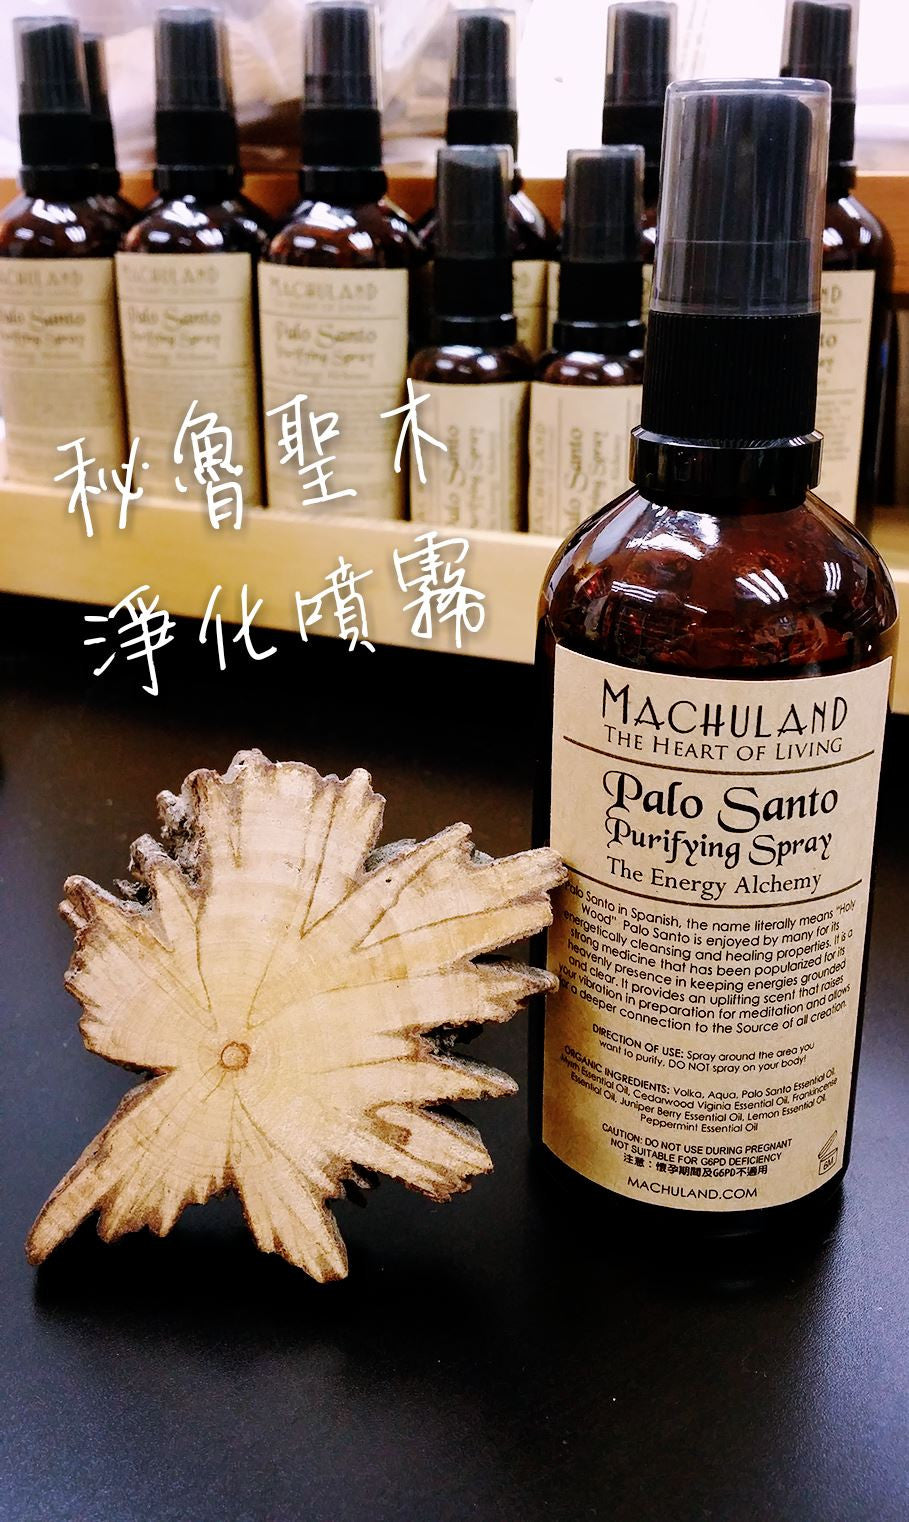 秘魯聖木淨化噴霧 Palo Santo Purifying Spray - Machuland hk